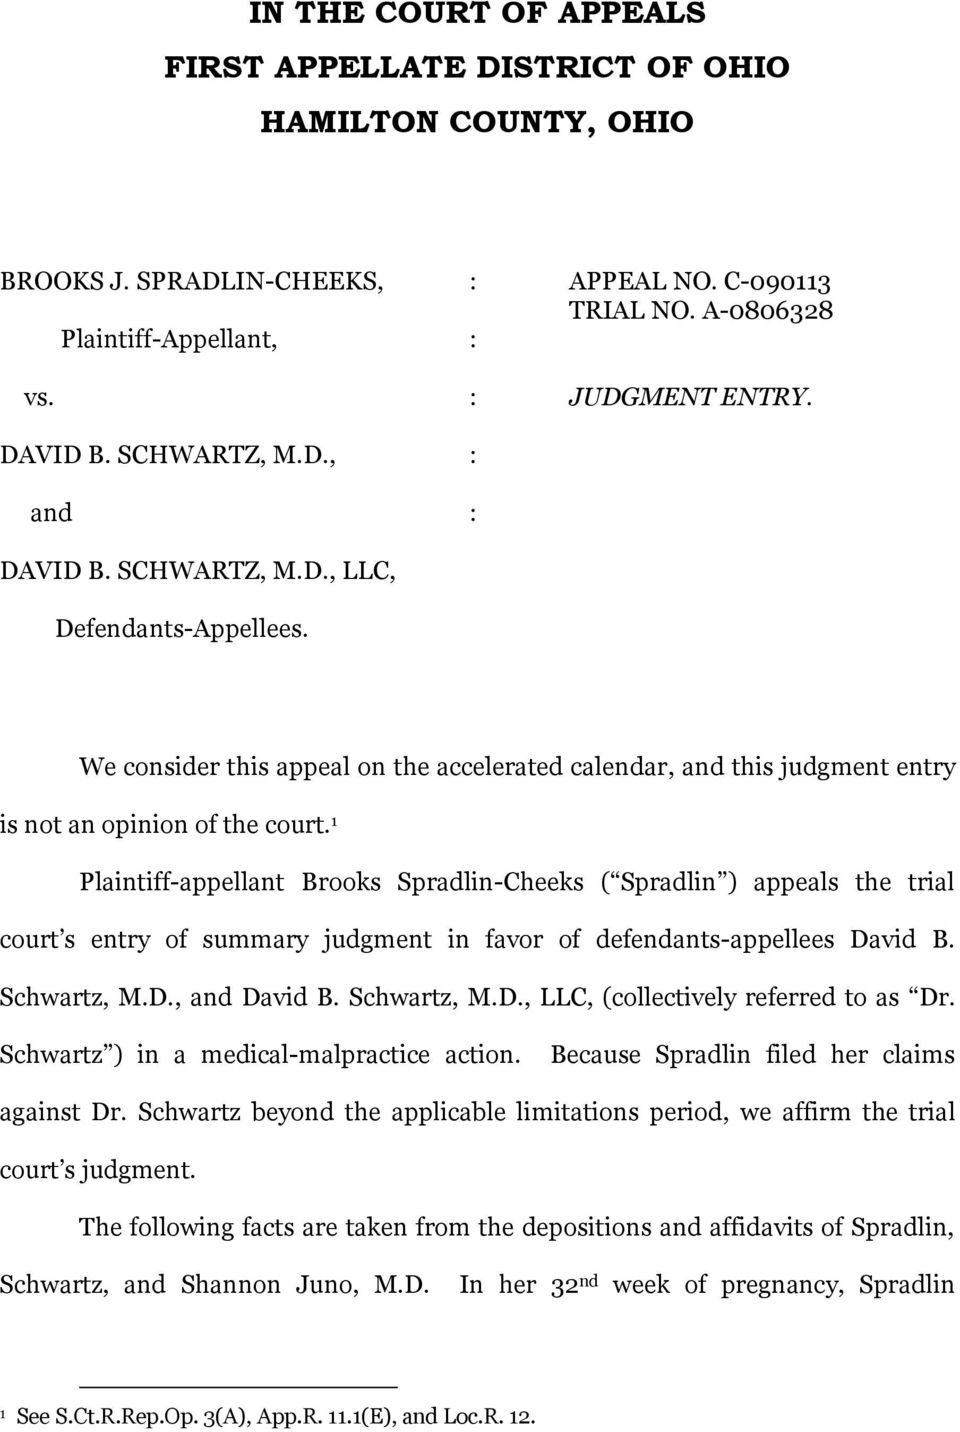 1 Plaintiff-appellant Brooks Spradlin-Cheeks ( Spradlin ) appeals the trial court s entry of summary judgment in favor of defendants-appellees David B. Schwartz, M.D., and David B. Schwartz, M.D., LLC, (collectively referred to as Dr.